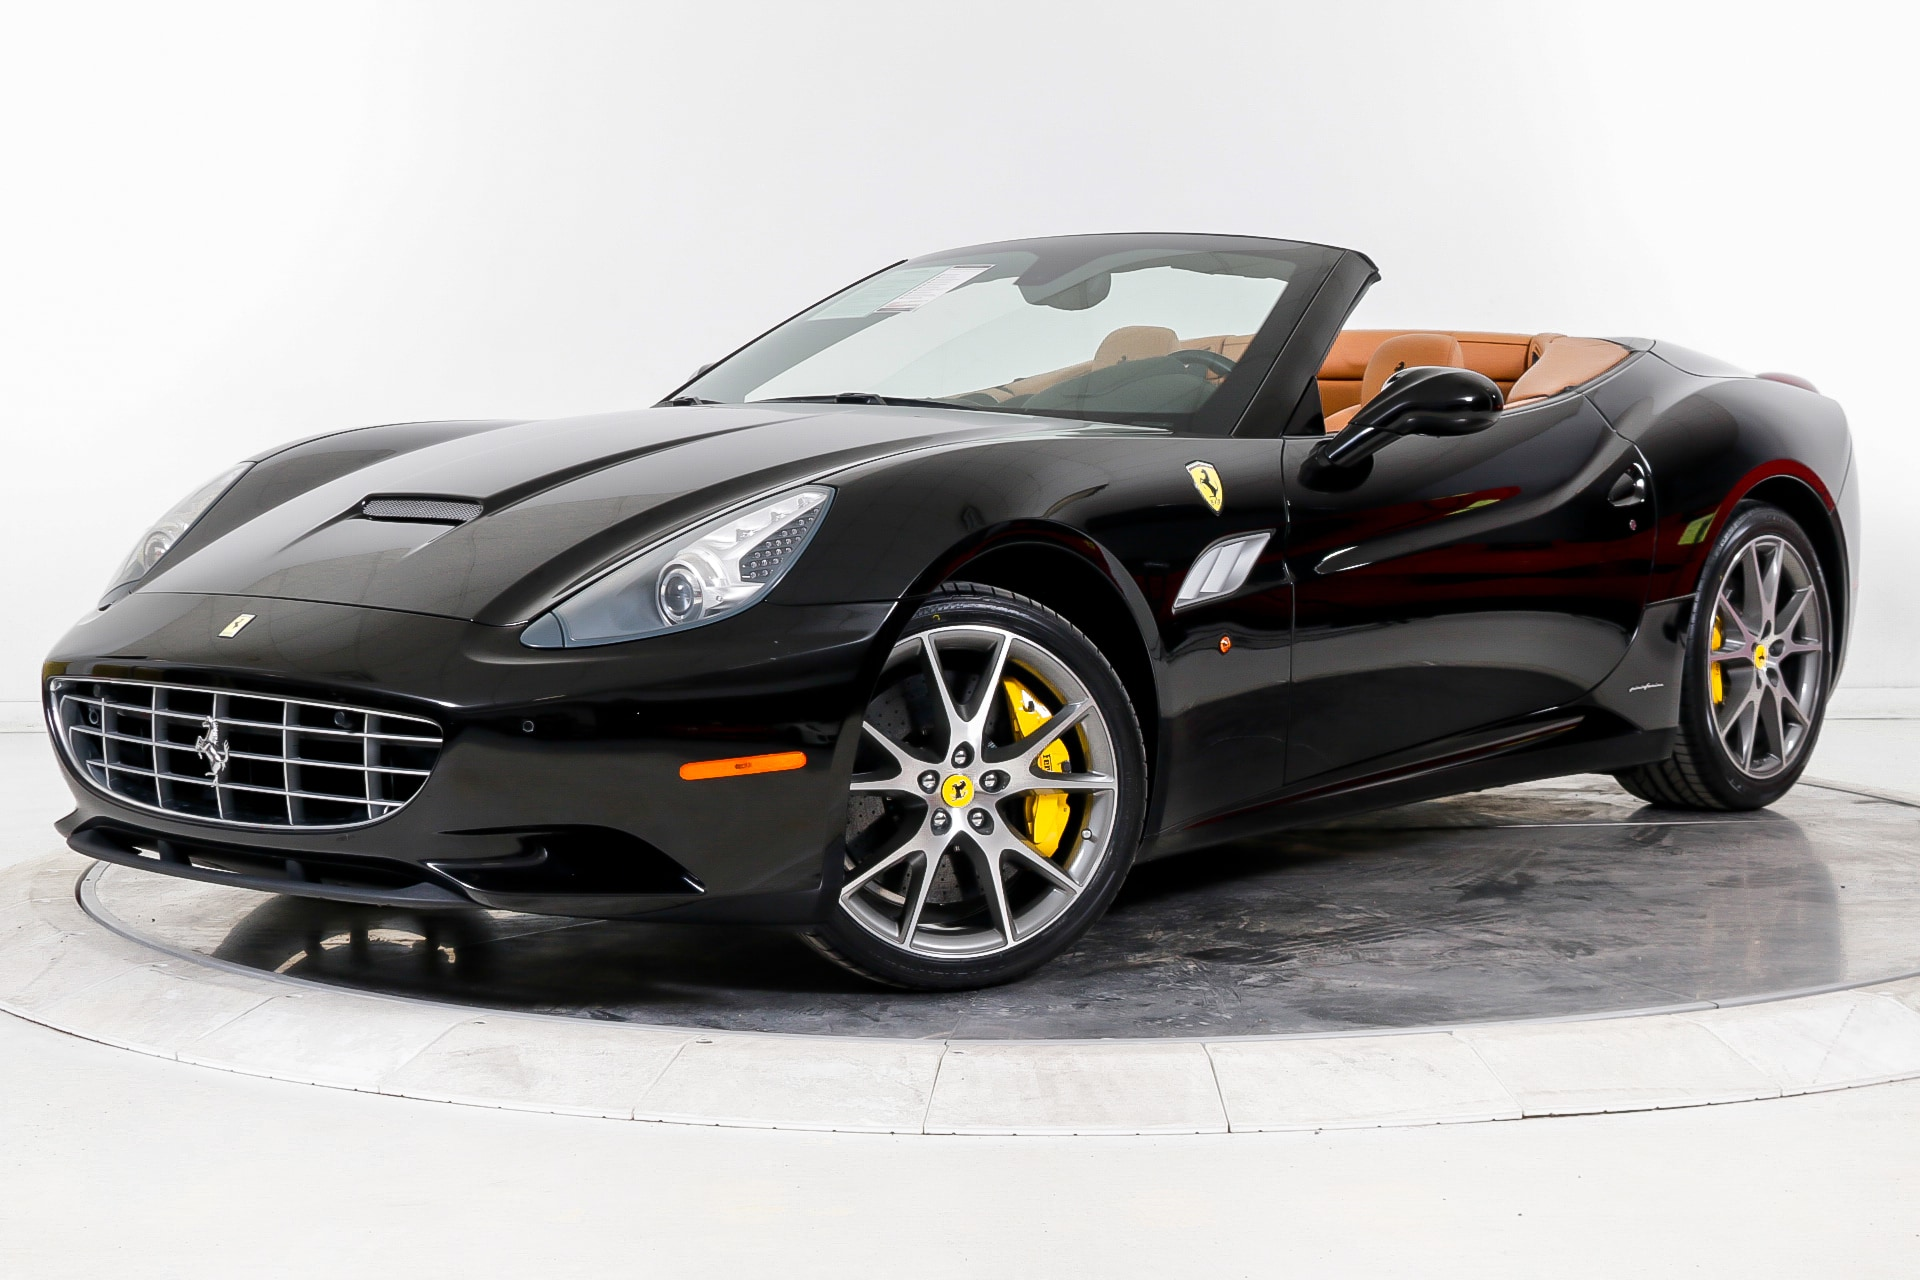 2014 FERRARI CALIFORNIA Convertible DYNAMIC_PREF_LABEL_INVENTORY_FEATURED_DEFAULT_INVENTORY_FEATURED1_ALTATTRIBUTEAFTER